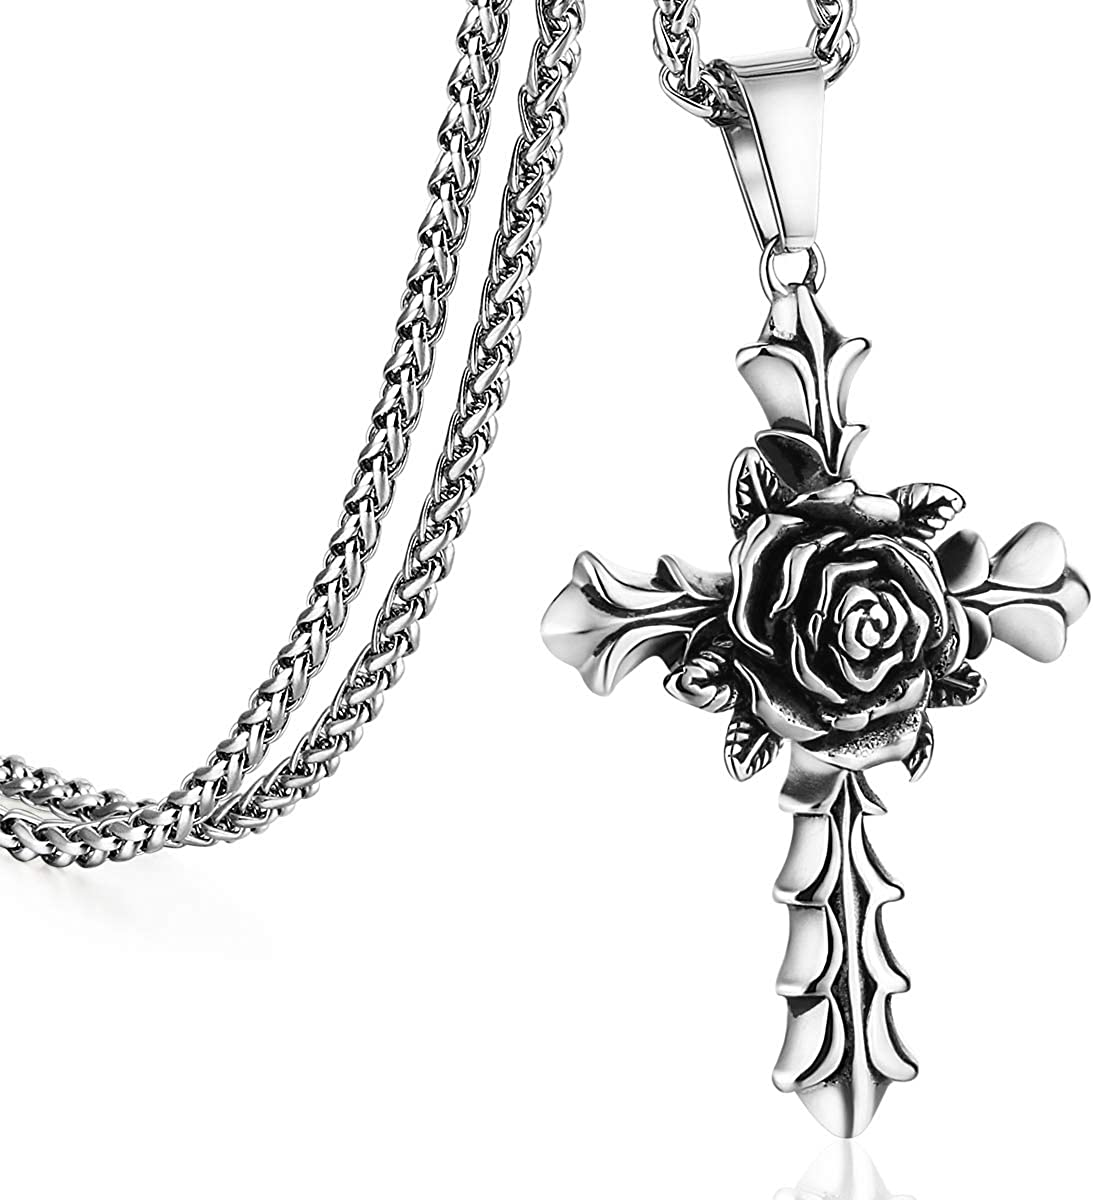 COTTVOTT Rose Cross Pendant Necklace for Women Stainless Steel Link Chain Body Jewelry 21.65